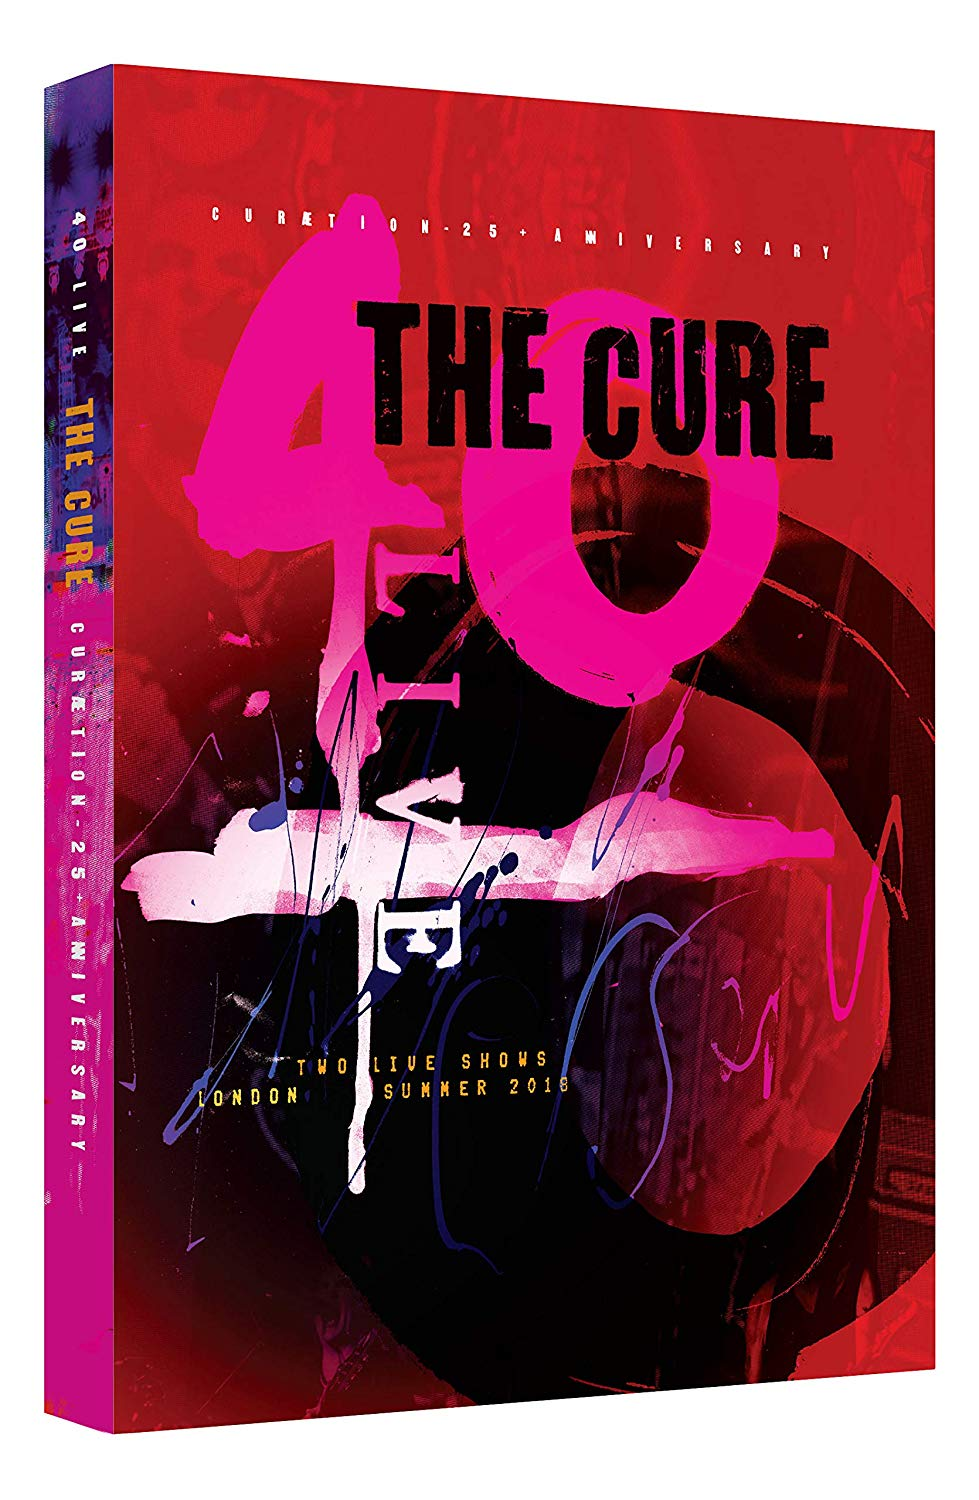 40 LIVE CURAETION 25 + ANNIVERSARY (2PC)-CURE